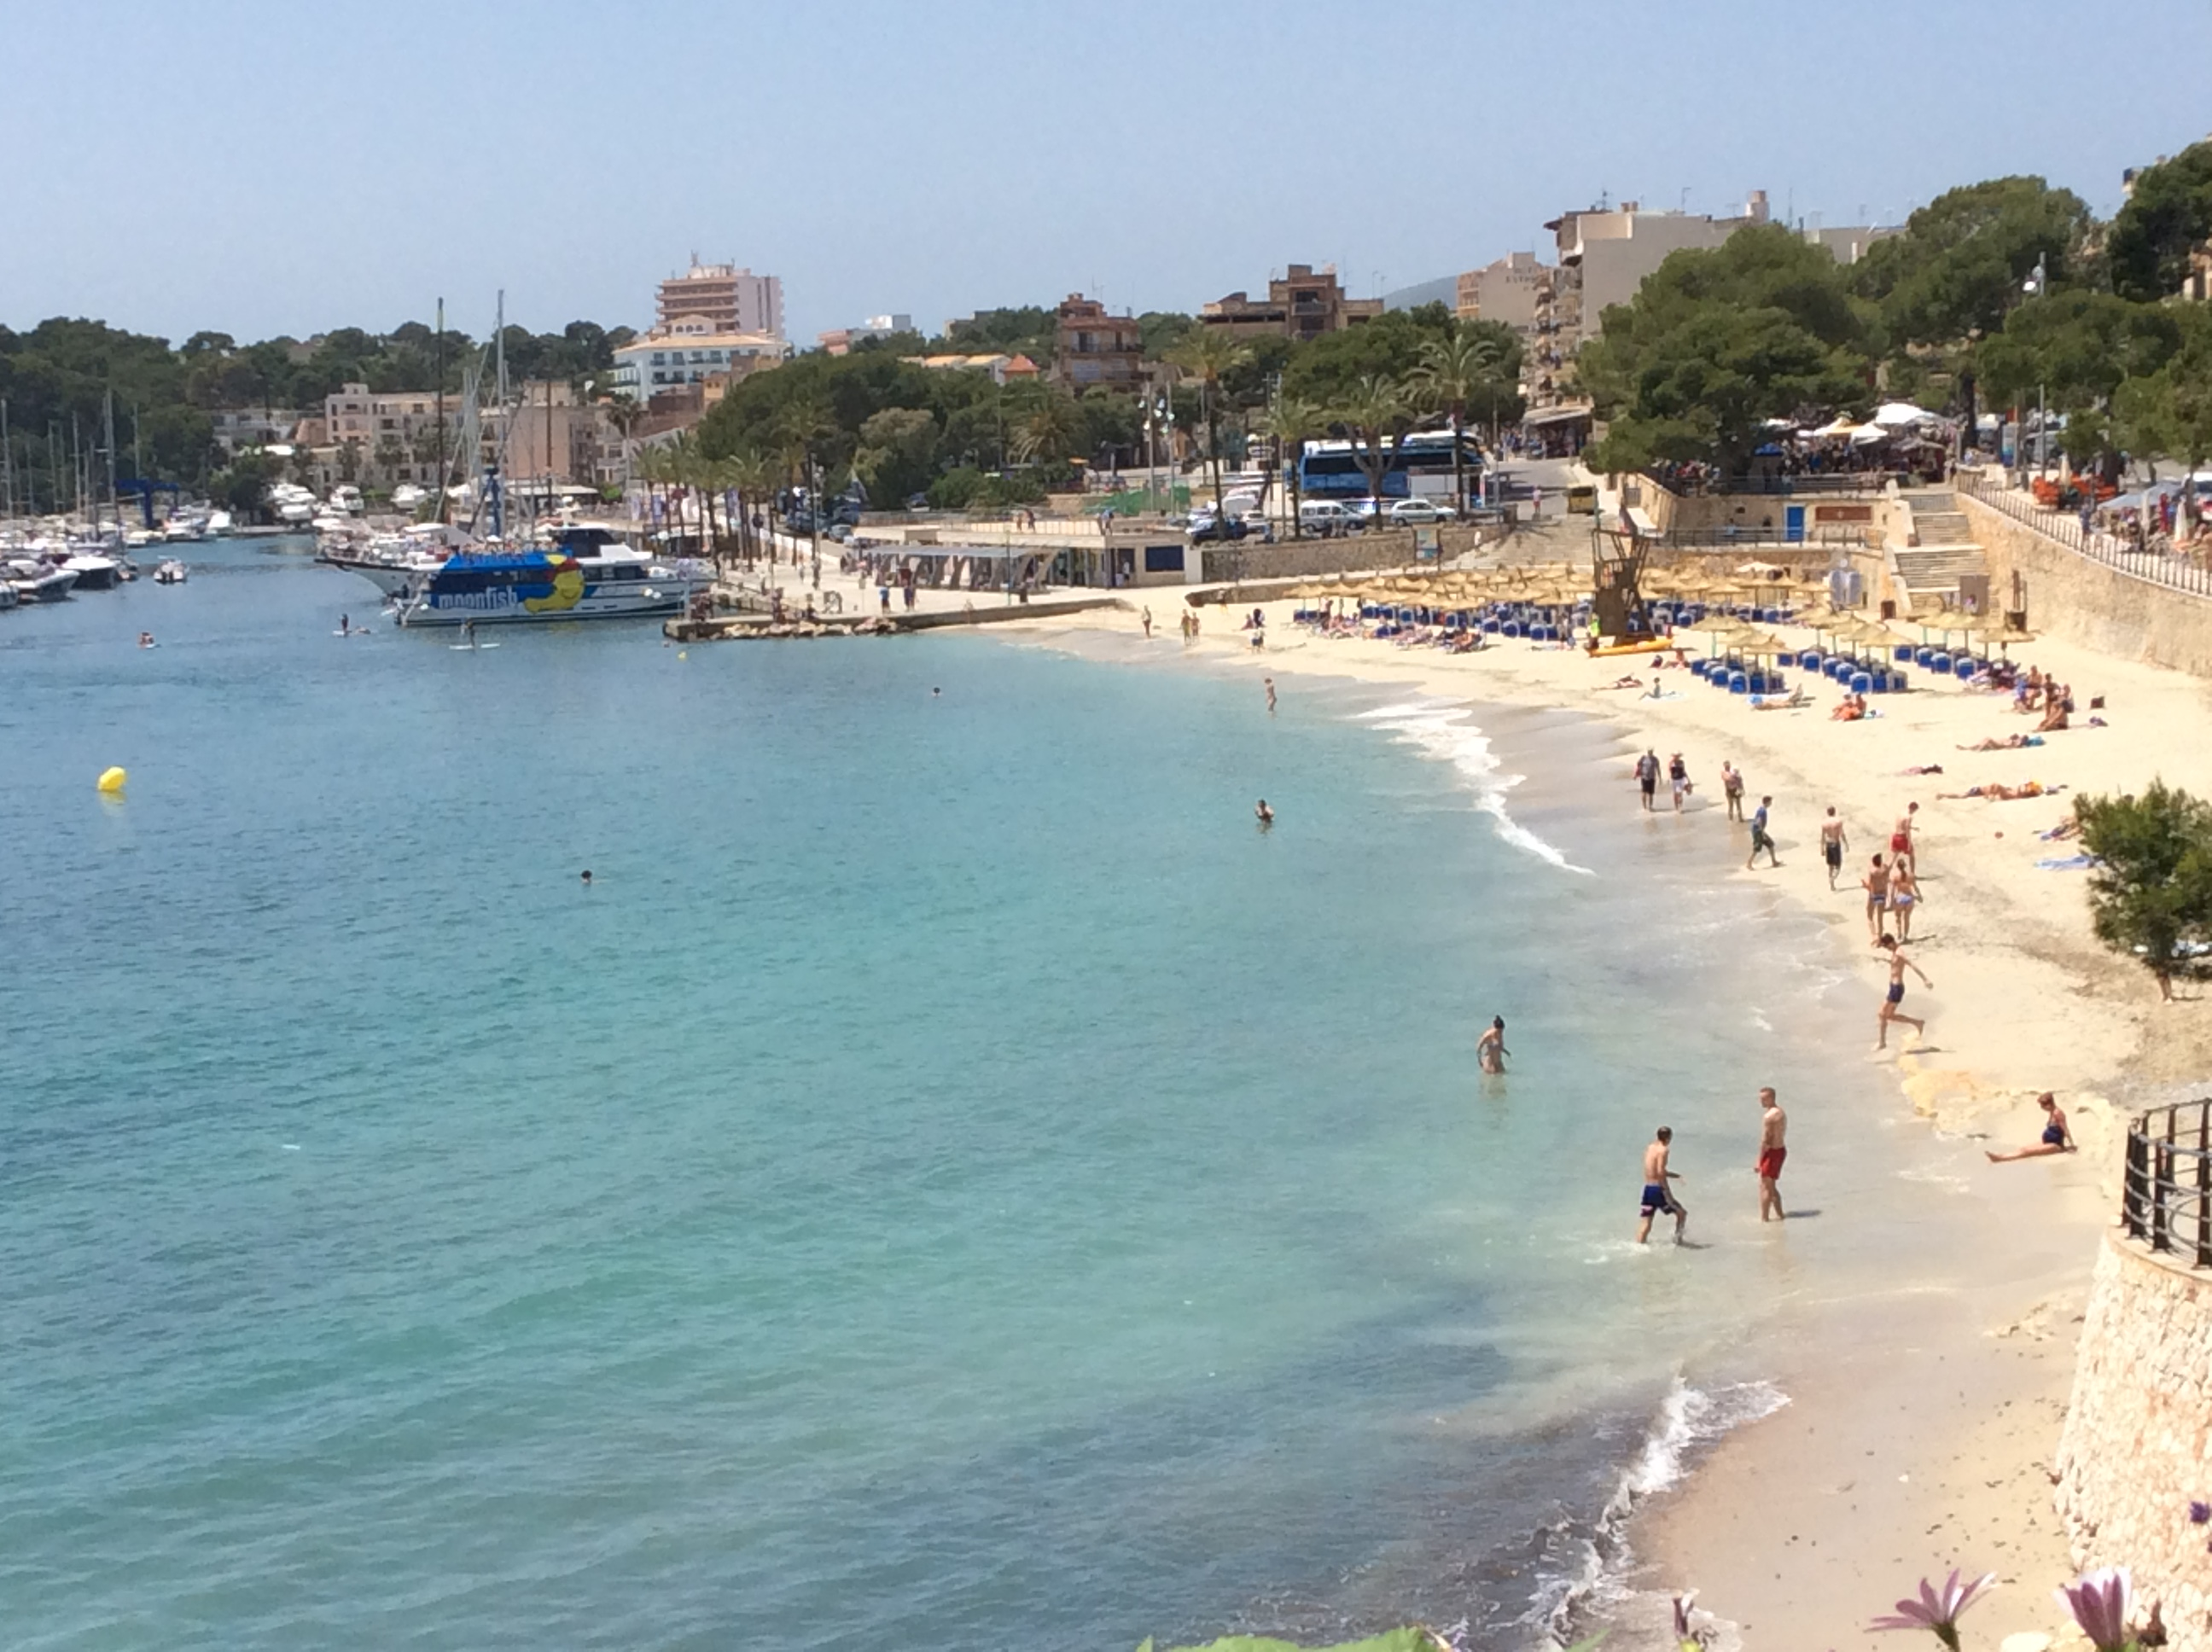 Porto Cristo beach in the quieter month of May